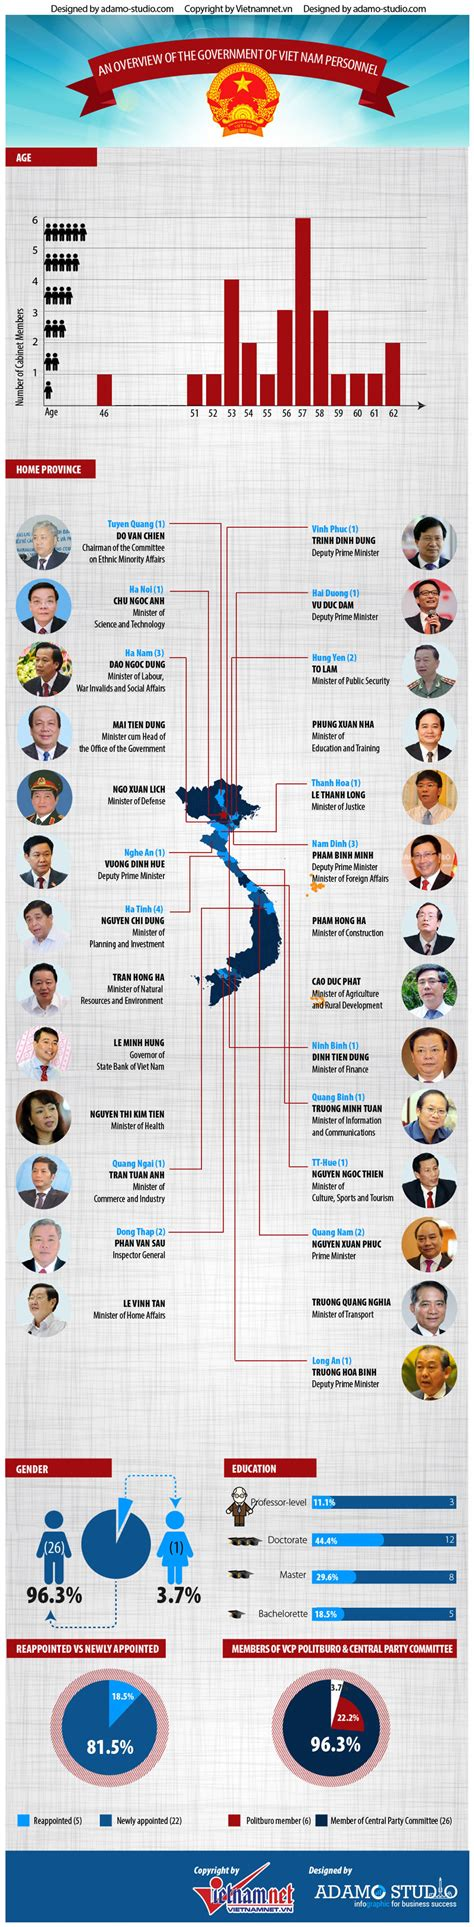 overview of the new cabinet news vietnamnet